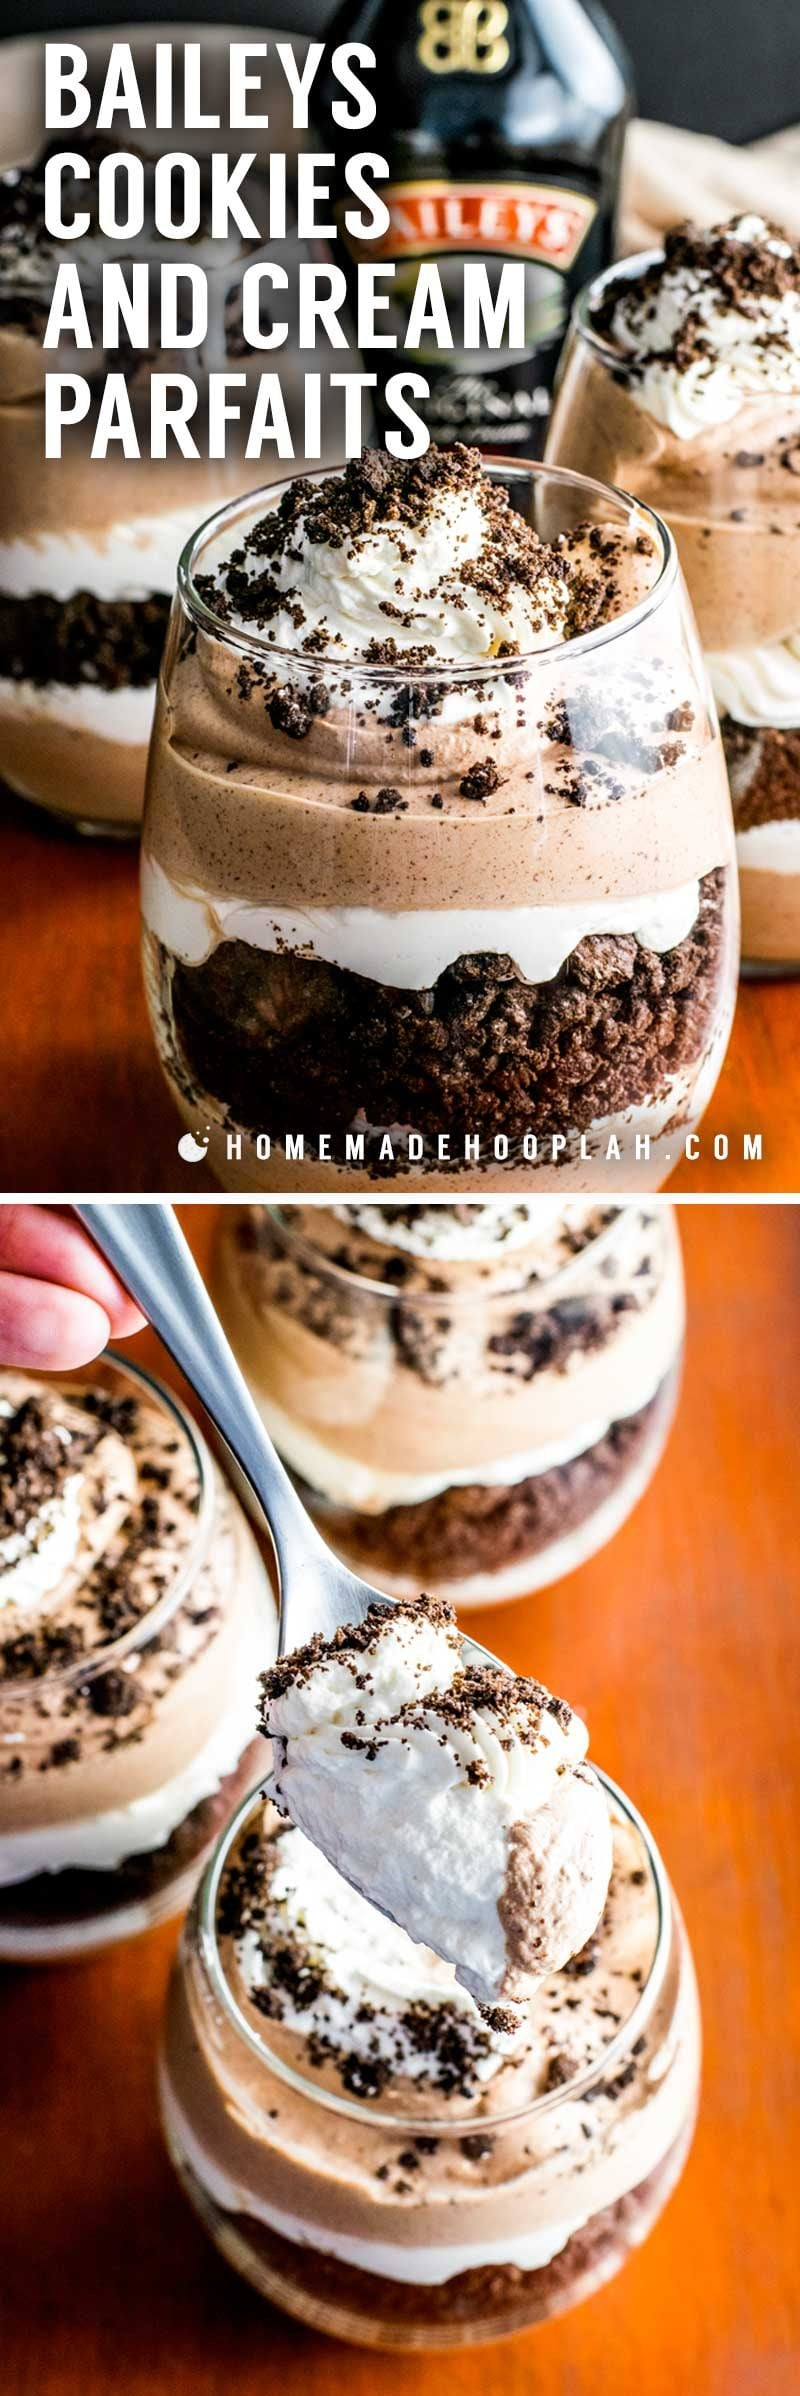 Baileys Cookies and Cream Parfaits! Layered chocolate and Baileys cream paired with crumbled Oreo cookies. This delicious Baileys parfait is the perfect weekend retreat! | HomemadeHooplah.com